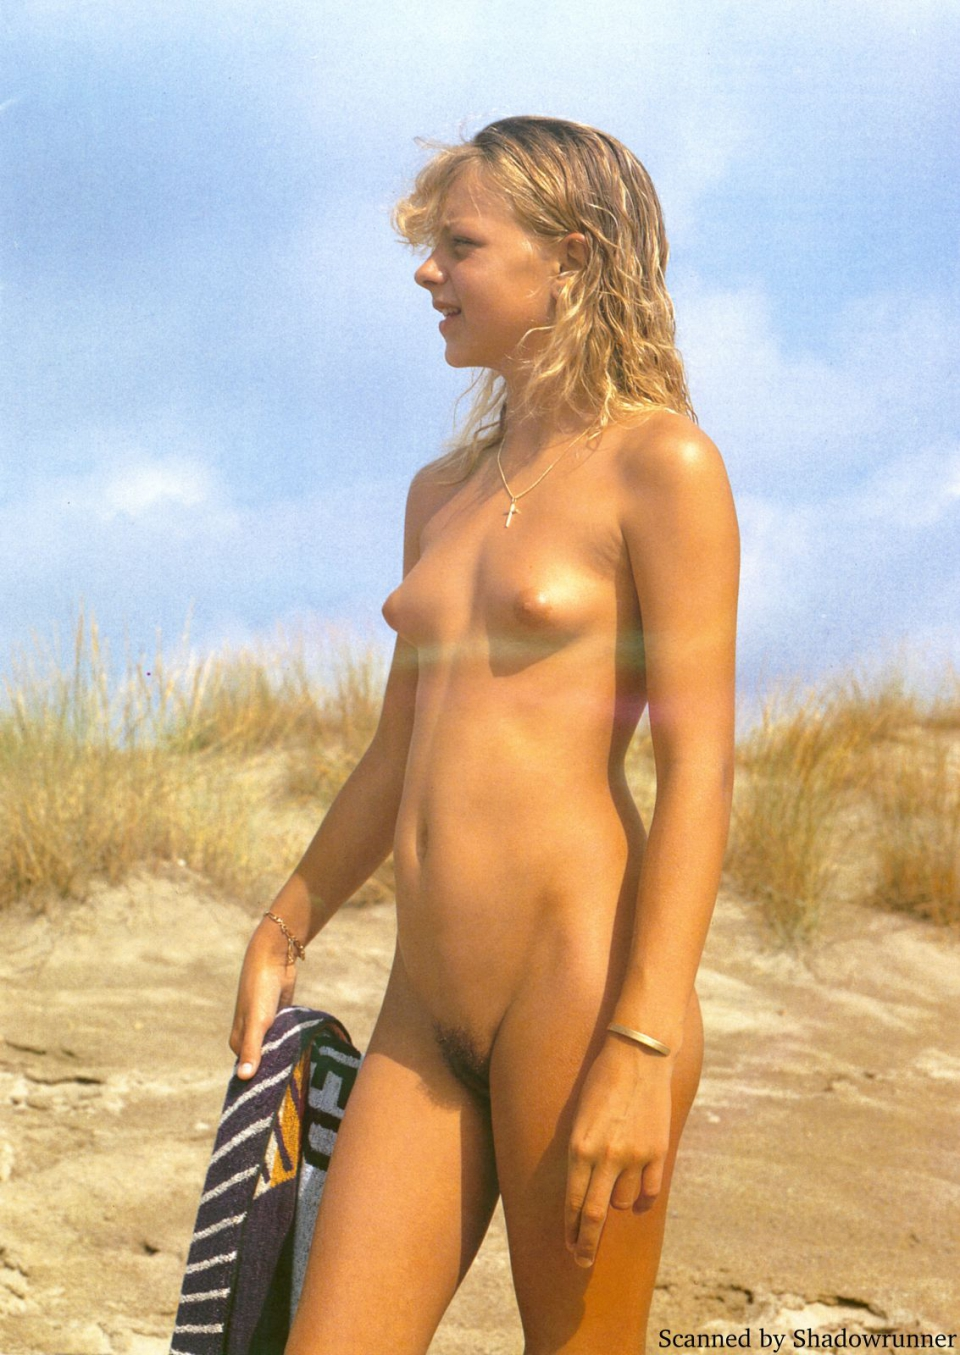 Nudist sonnenfreunde sonderheft magazine remarkable